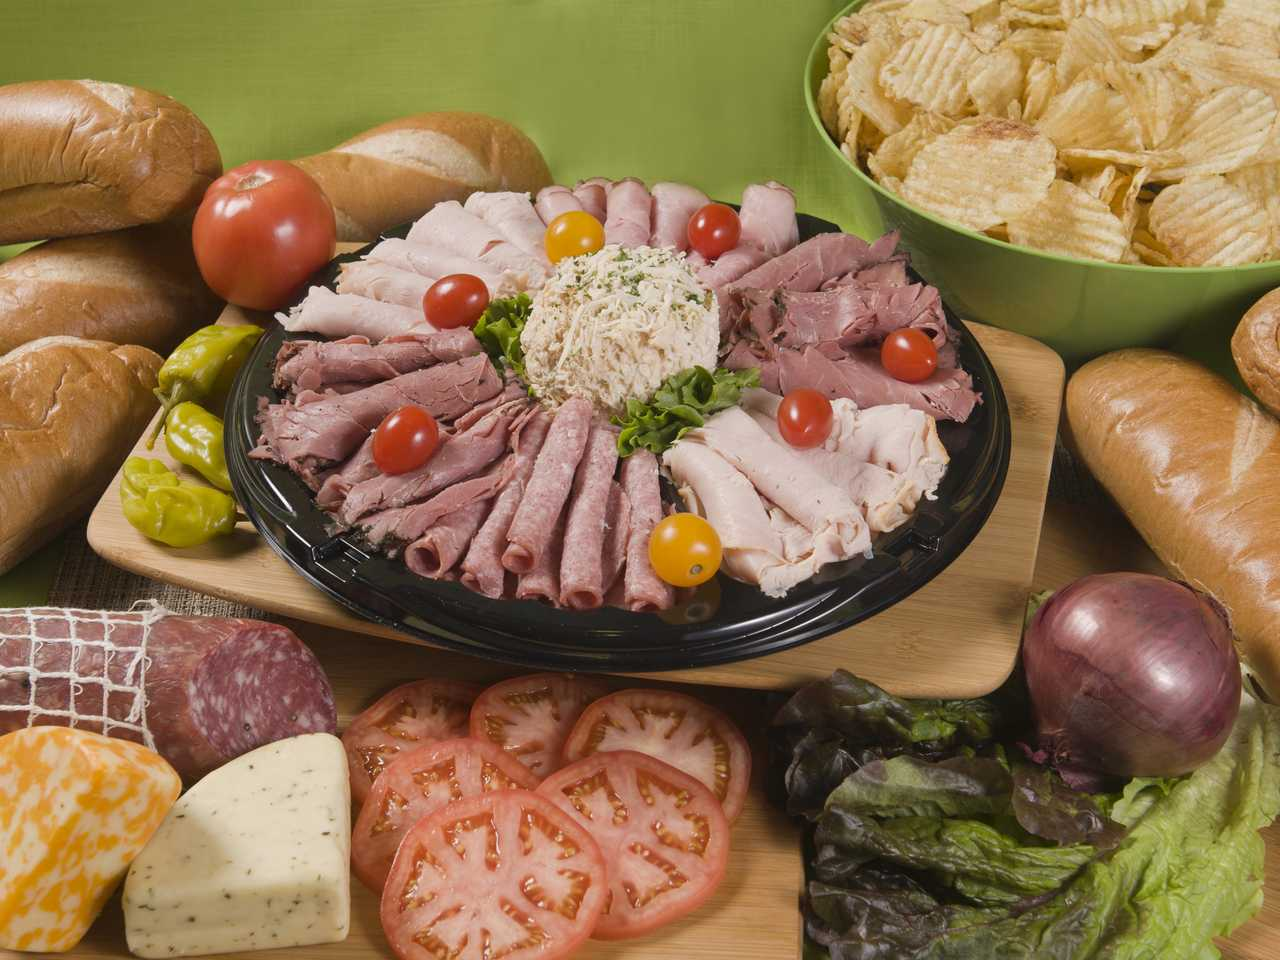 Peppercini's Deli & Catering - Food and Beverage - Delis in Anchorage AK